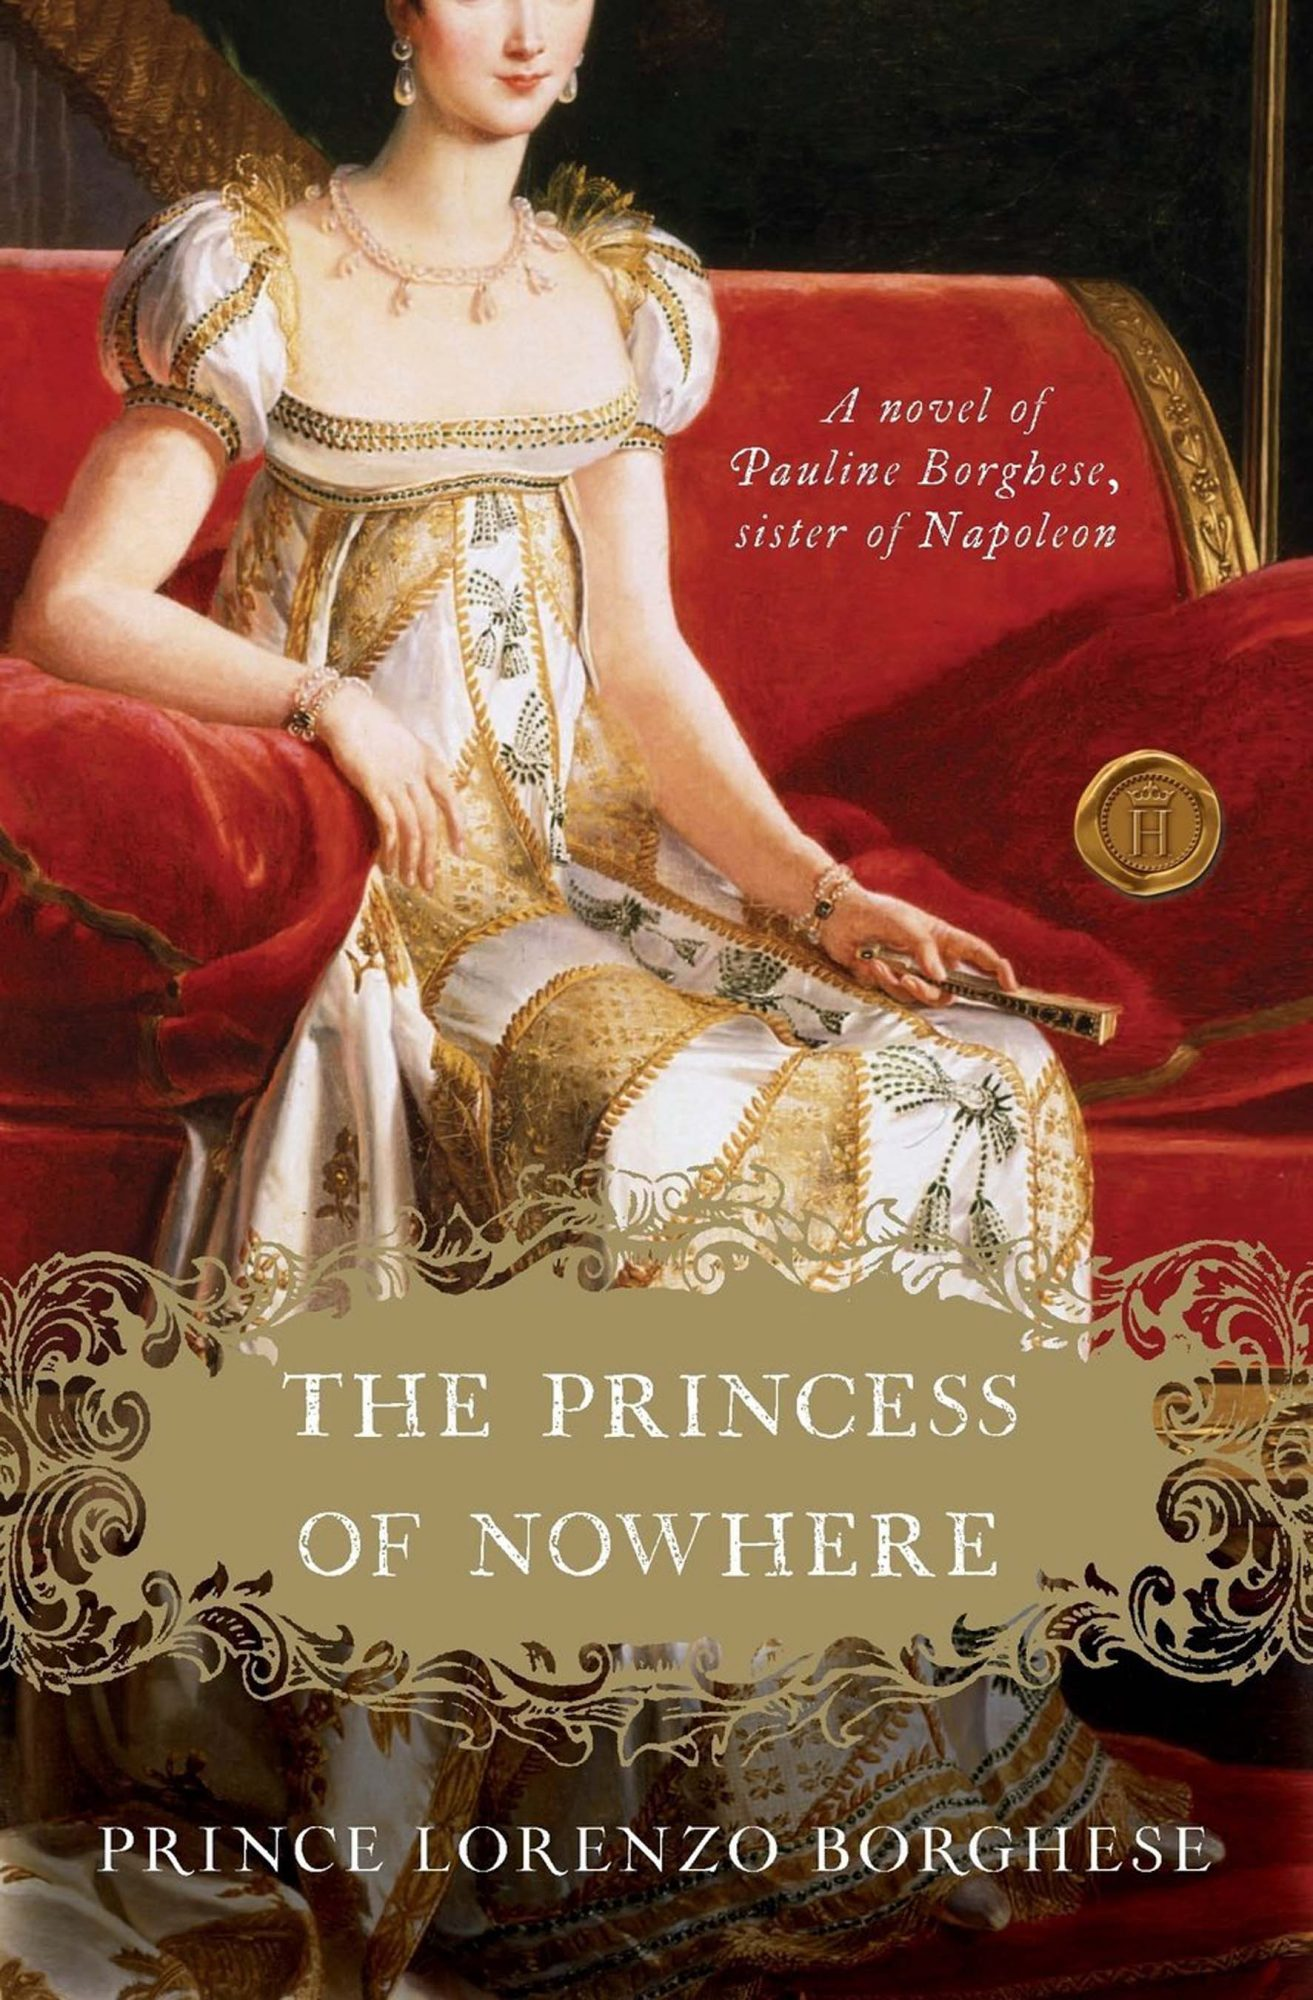 the-princess-of-nowhere-by-lorenzo-borghese-7-dec-2010-paperback_13508140